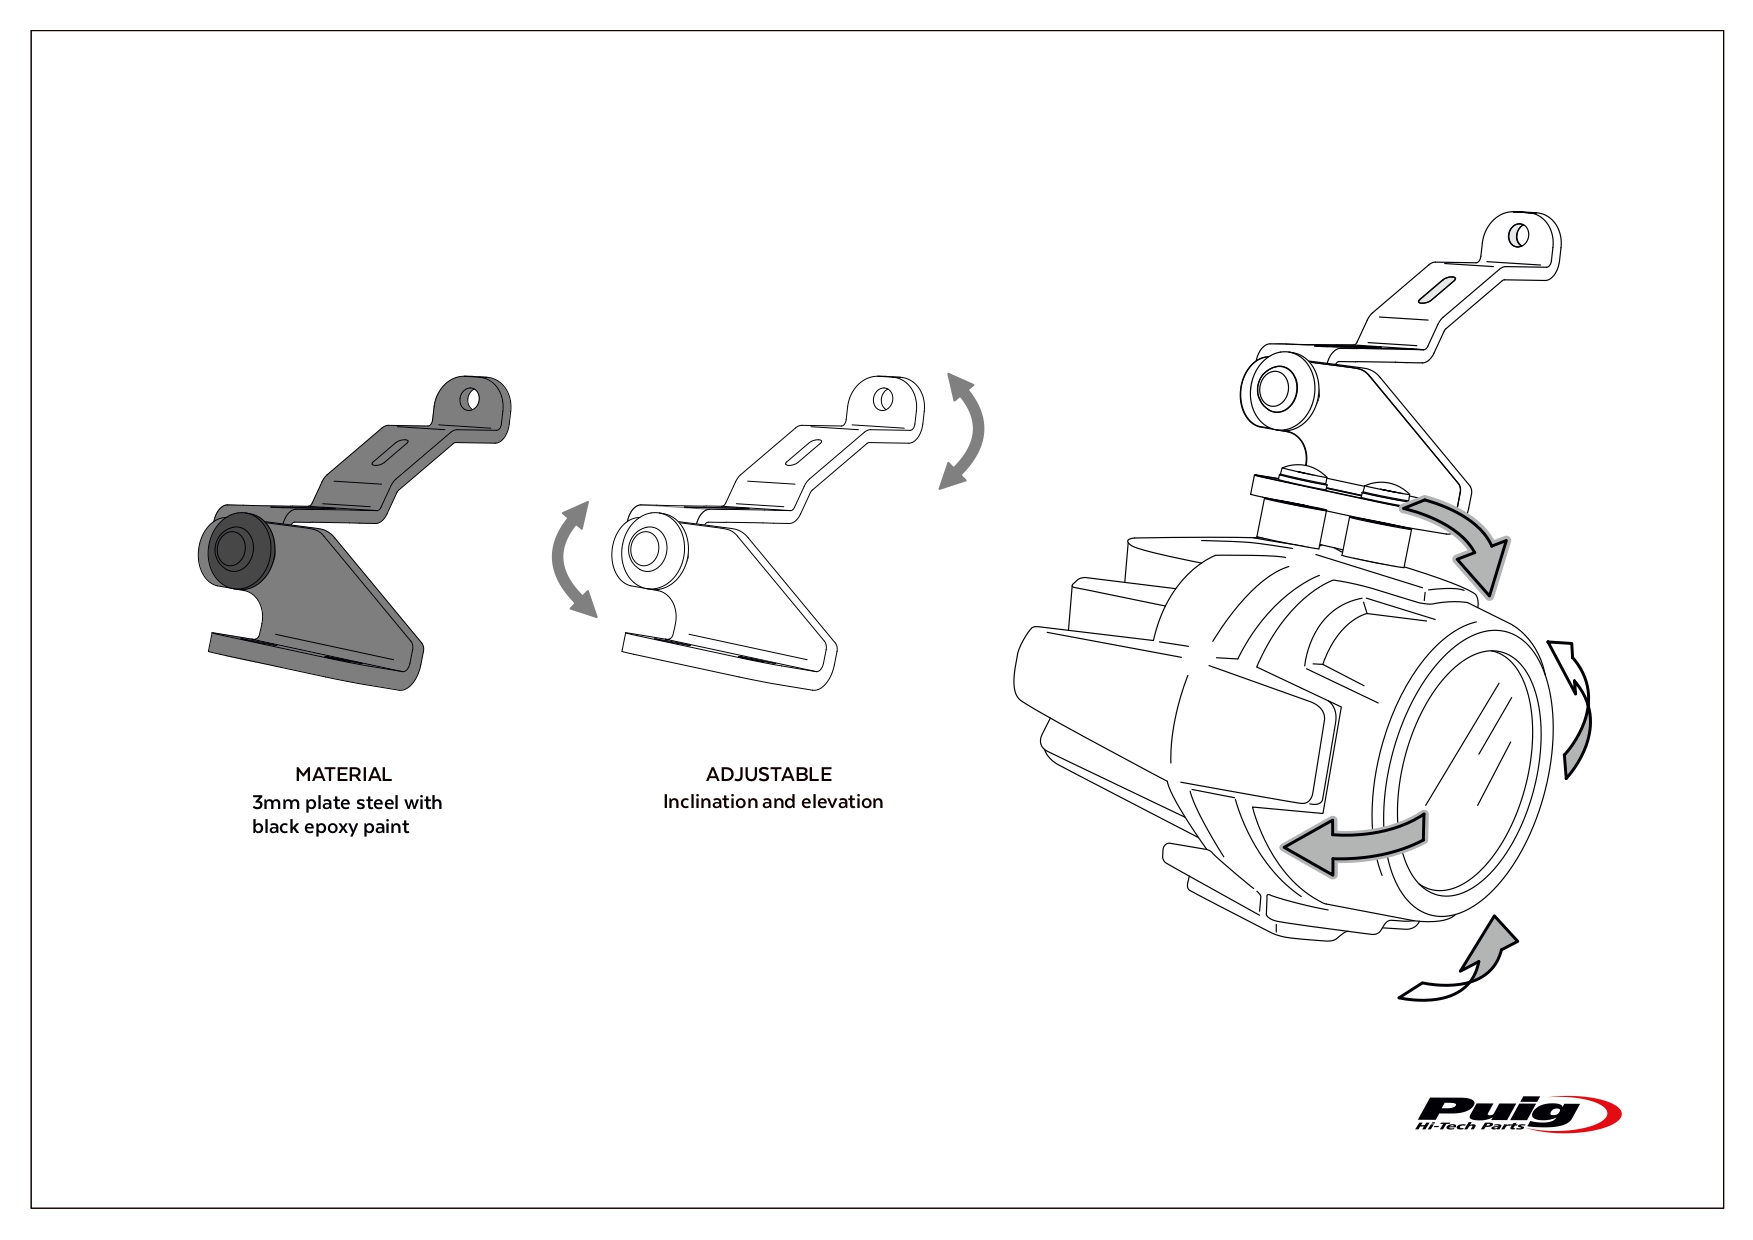 Puig Presents Specific Supports For Auxiliary Lights